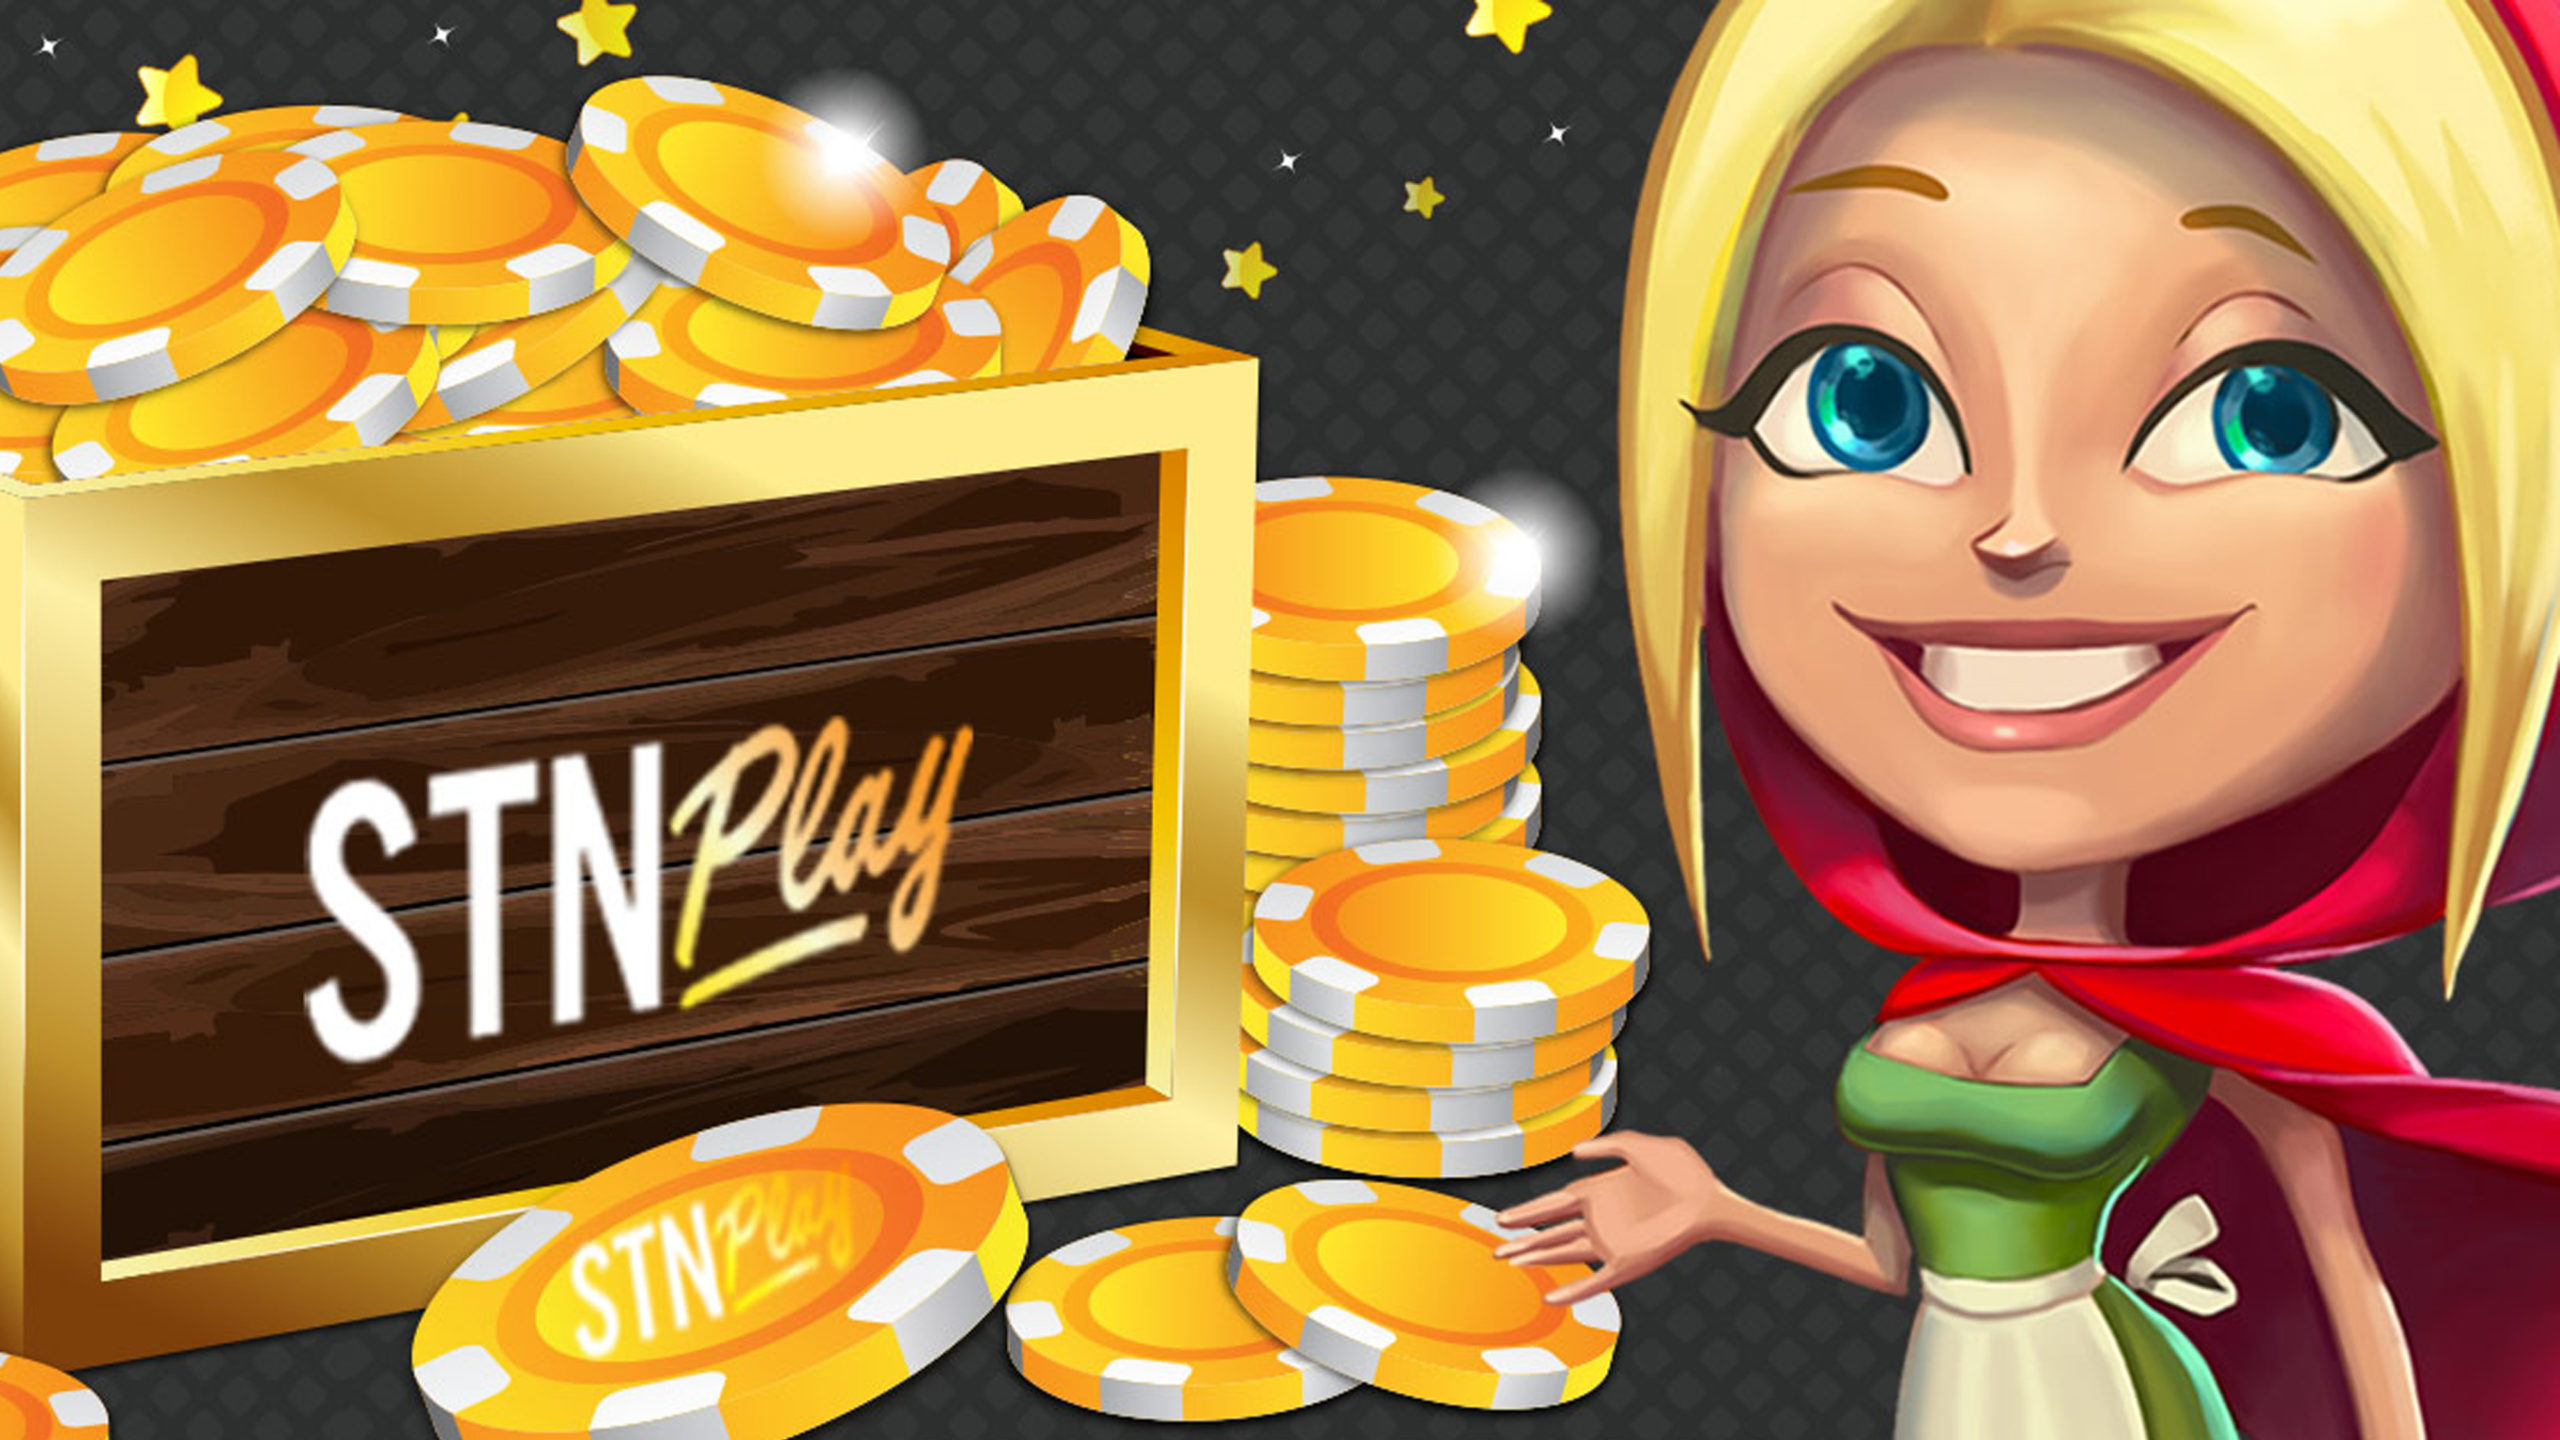 STN Play Cartoon of Little Red Riding Hood with crate of gold STN PLAY chips